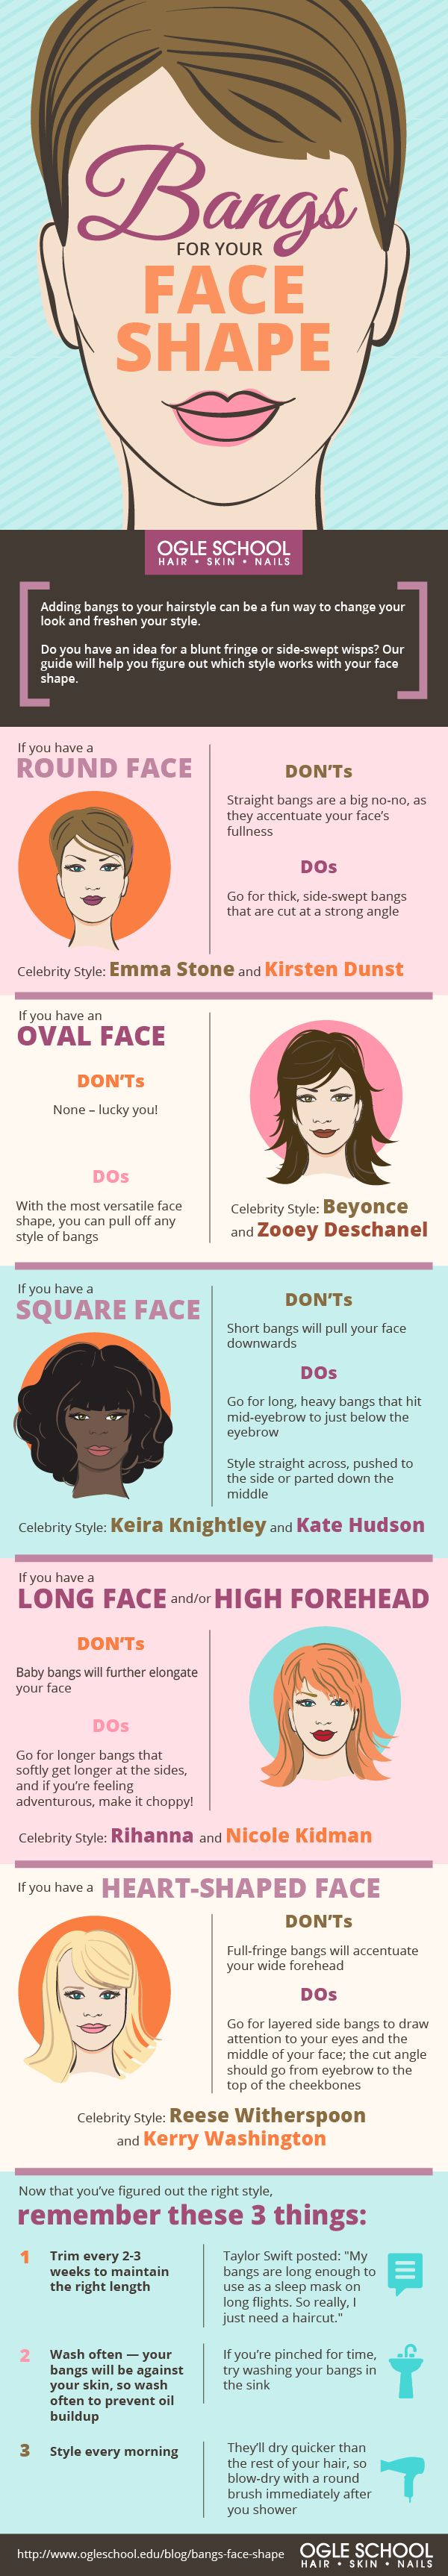 17 Full Fringe Hairstyles Face Shapes To Flaunt This Season